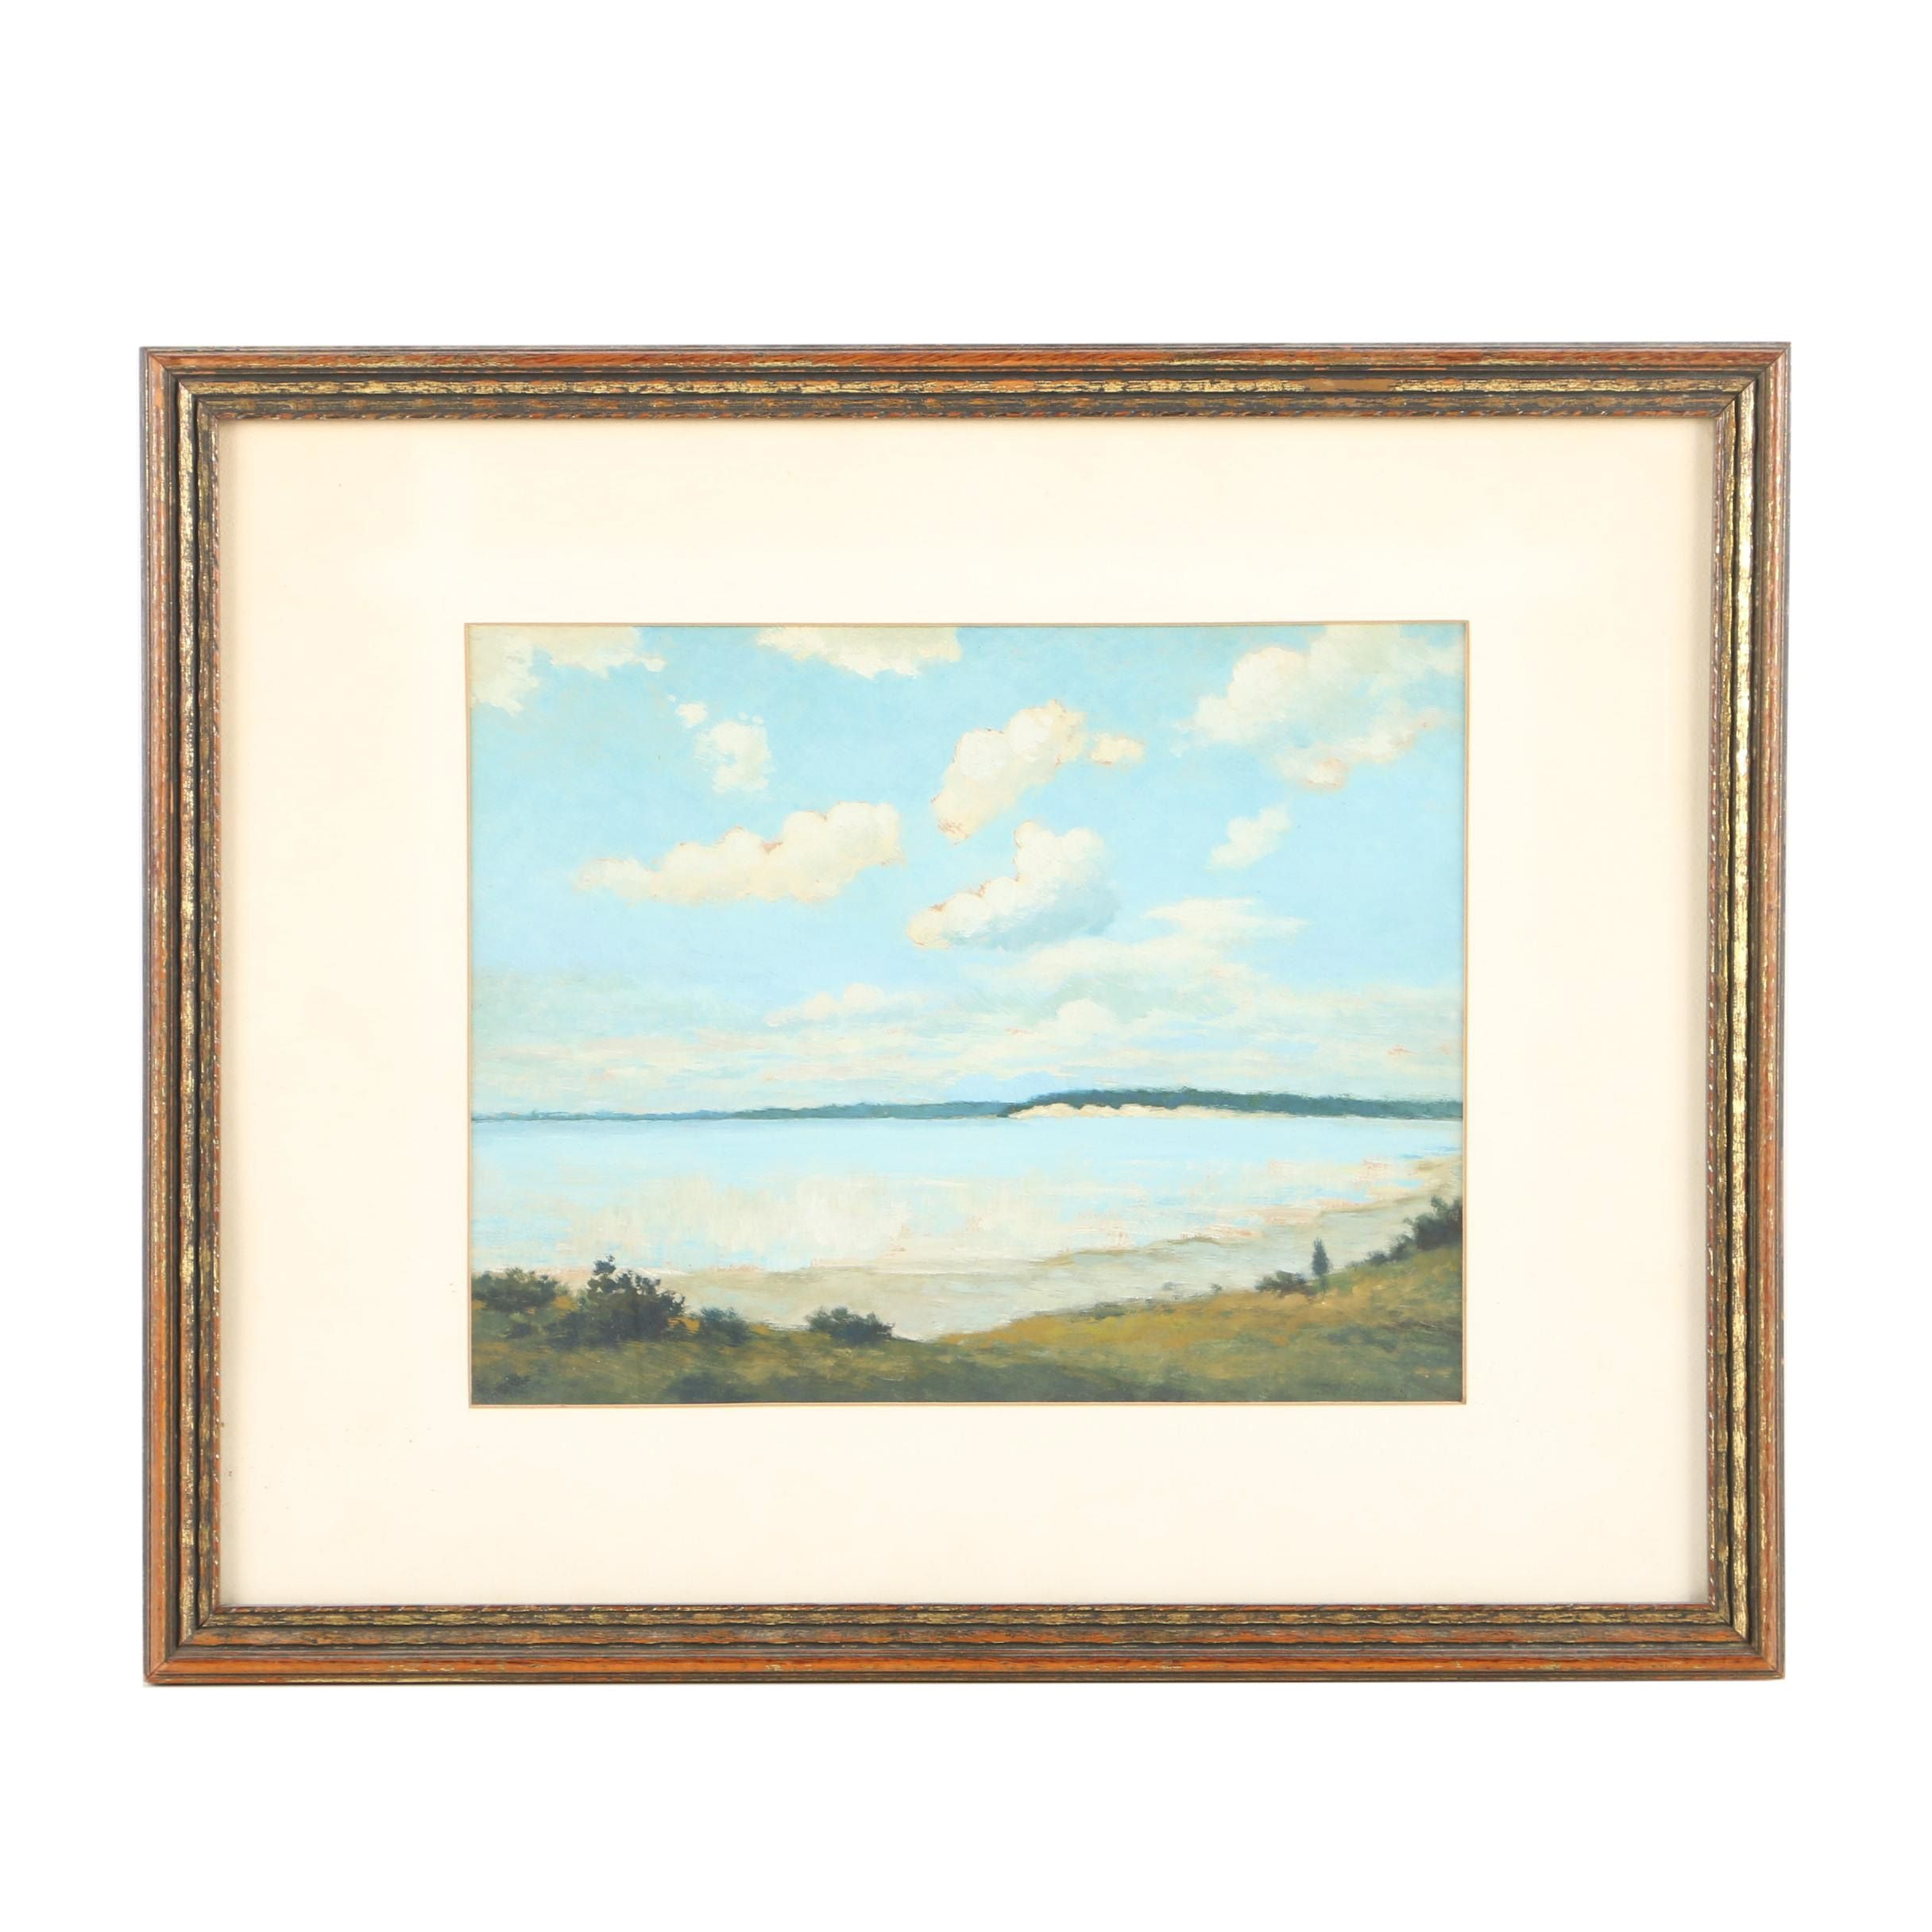 J. A. Burns Oil Painting on Panel of Seaside Landscape